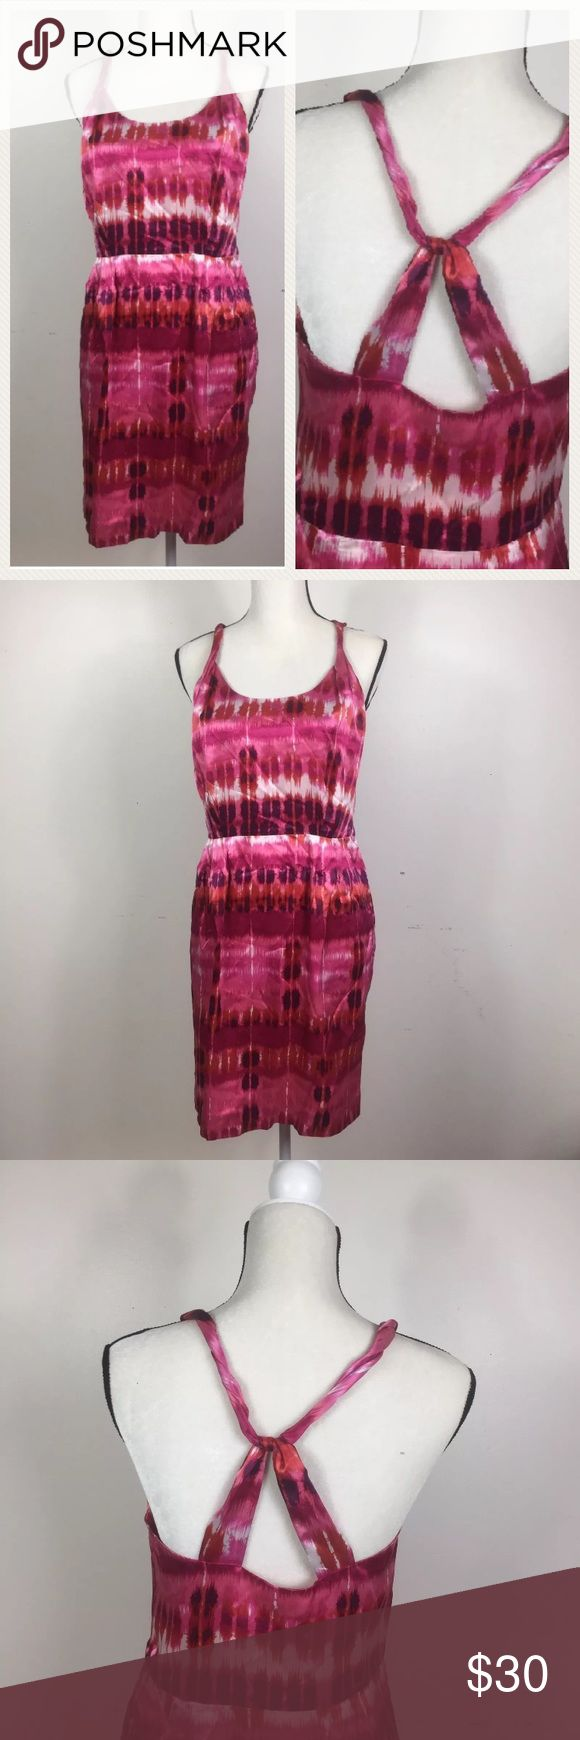 NWT Banana Republic 100% Silk dress tie dye Brand new with tag Banana Republic Dress with twist back design and pockets. Pink and purple tone with prints. Super soft & luxurious 100% silk exterior (lining is poly).  Size: 8P (8 petites)  Condition: new with tag Measurements: 18 inches across underarm / 16 inches across waist / 21 inches across bust / 37 inches long Banana Republic Dresses Mini